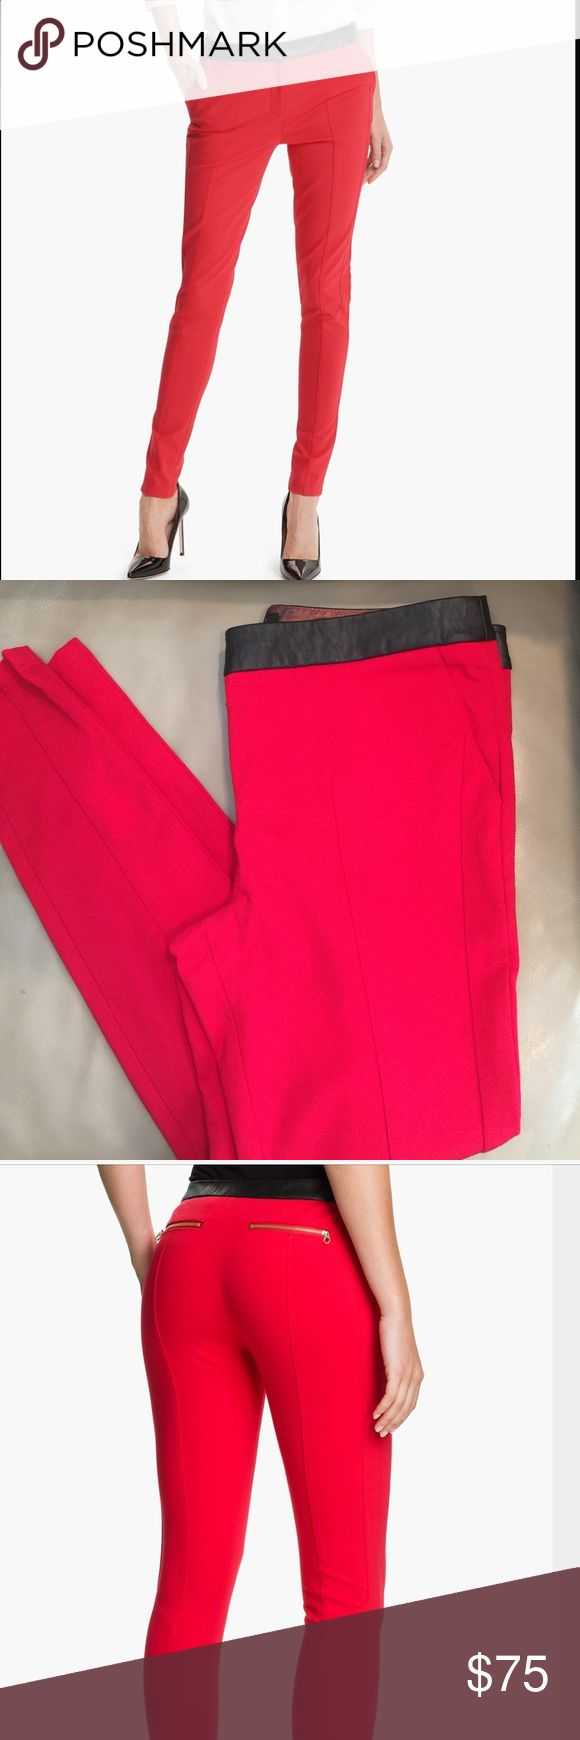 Ted Baker red ponte leggings skinny pants contrast Amazing brick red ponte skinny pants brand new but some tags cut out and marked to prevent returns. These are a Ted Baker size 3 equal to an 8. Please let me know if you have any questions. Thank you! Ted Baker Pants Skinny